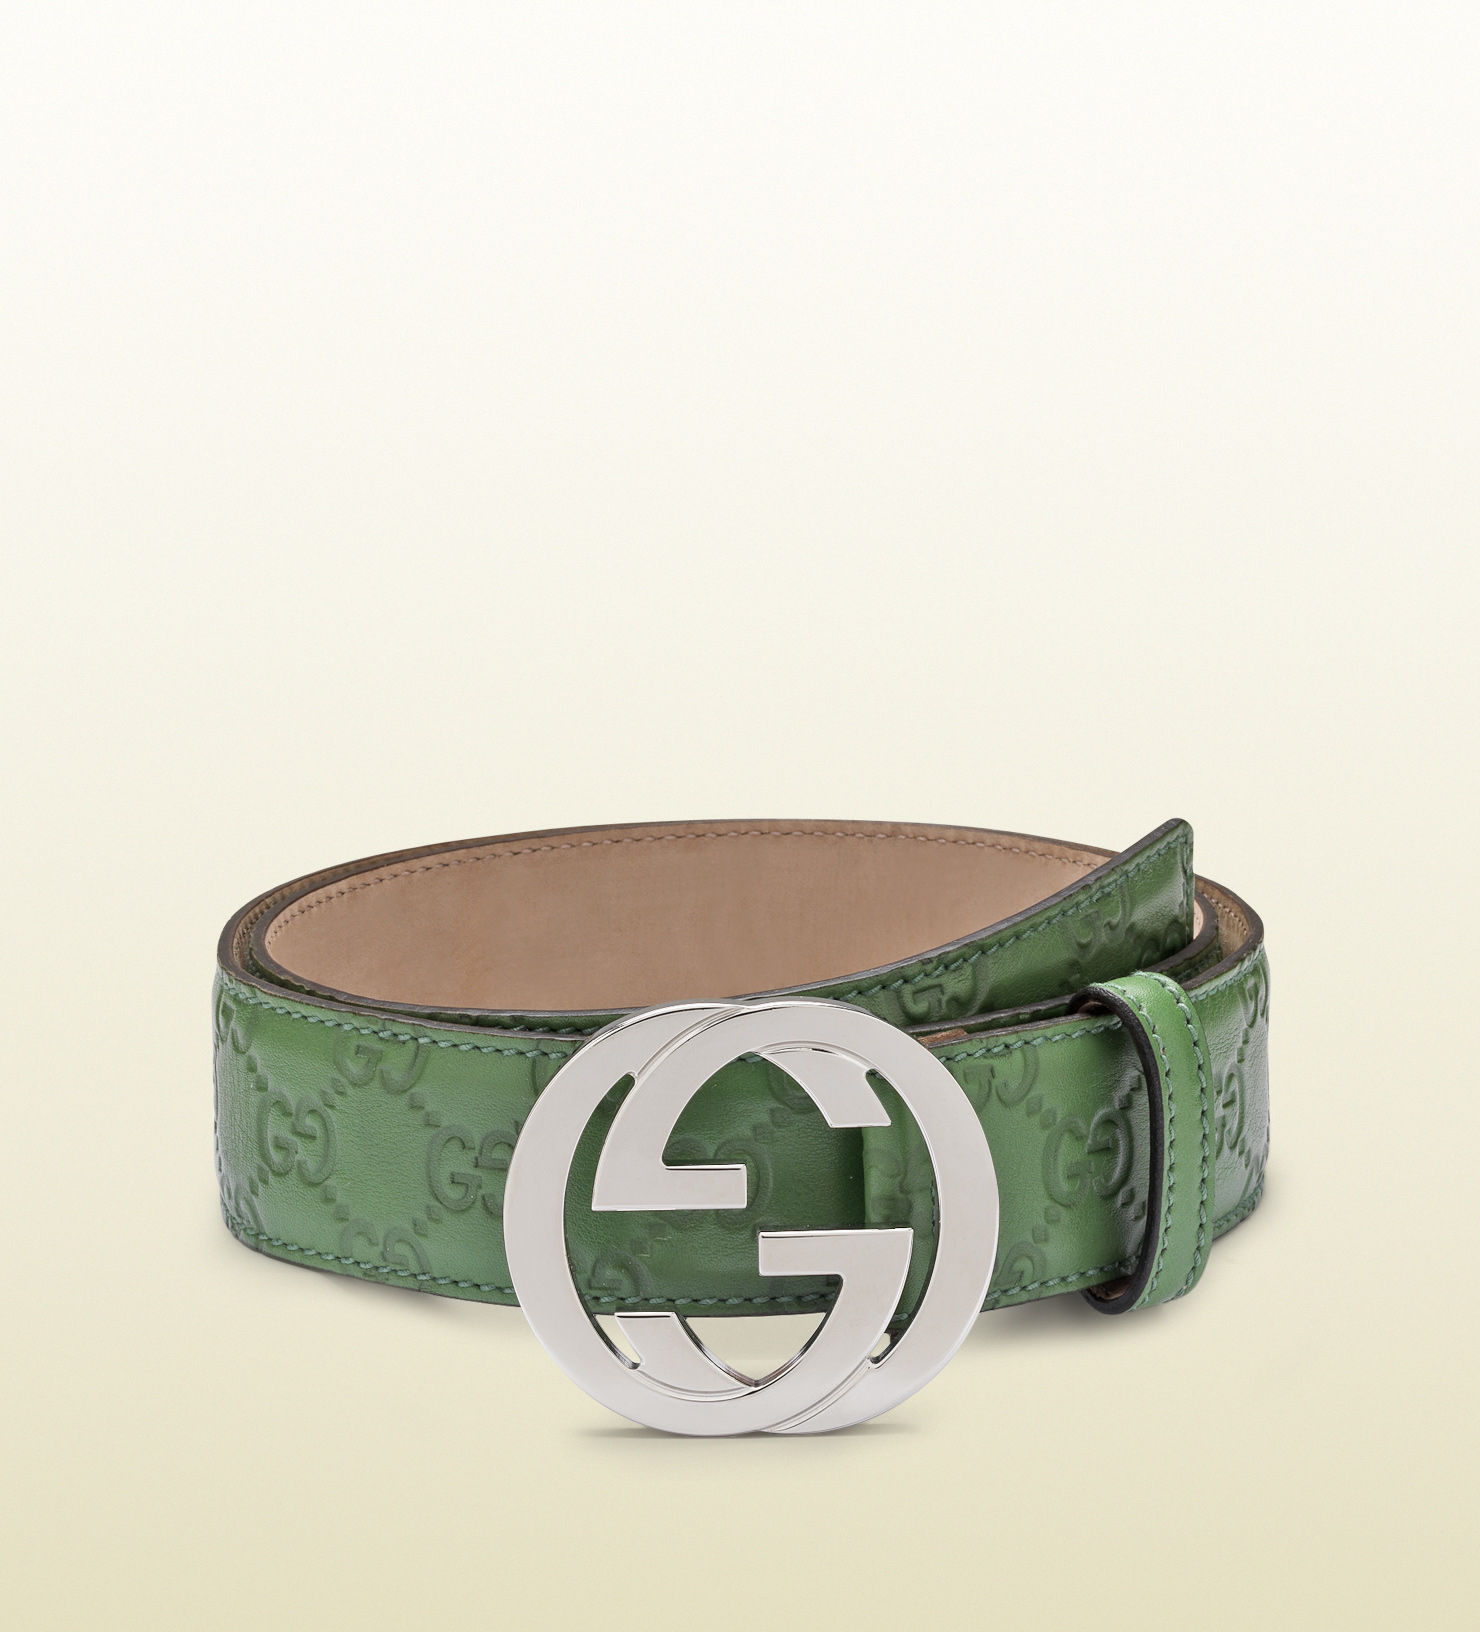 95a80f1d957 Lyst - Gucci Green Guccissima Leather Belt with Interlocking G ...